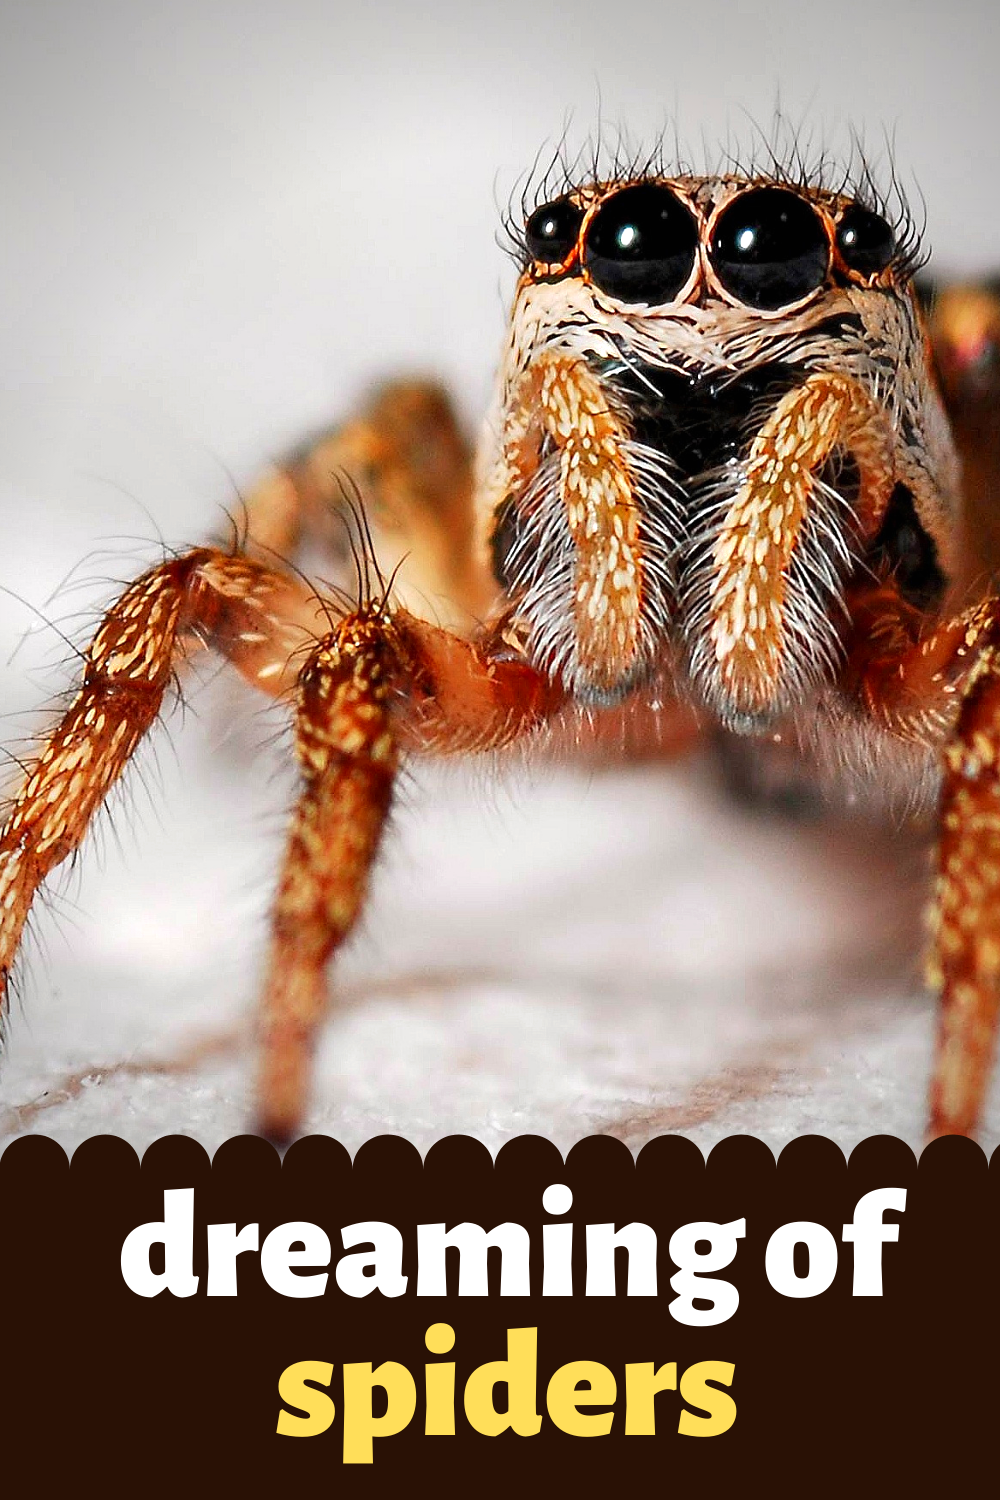 dreaming of spiders